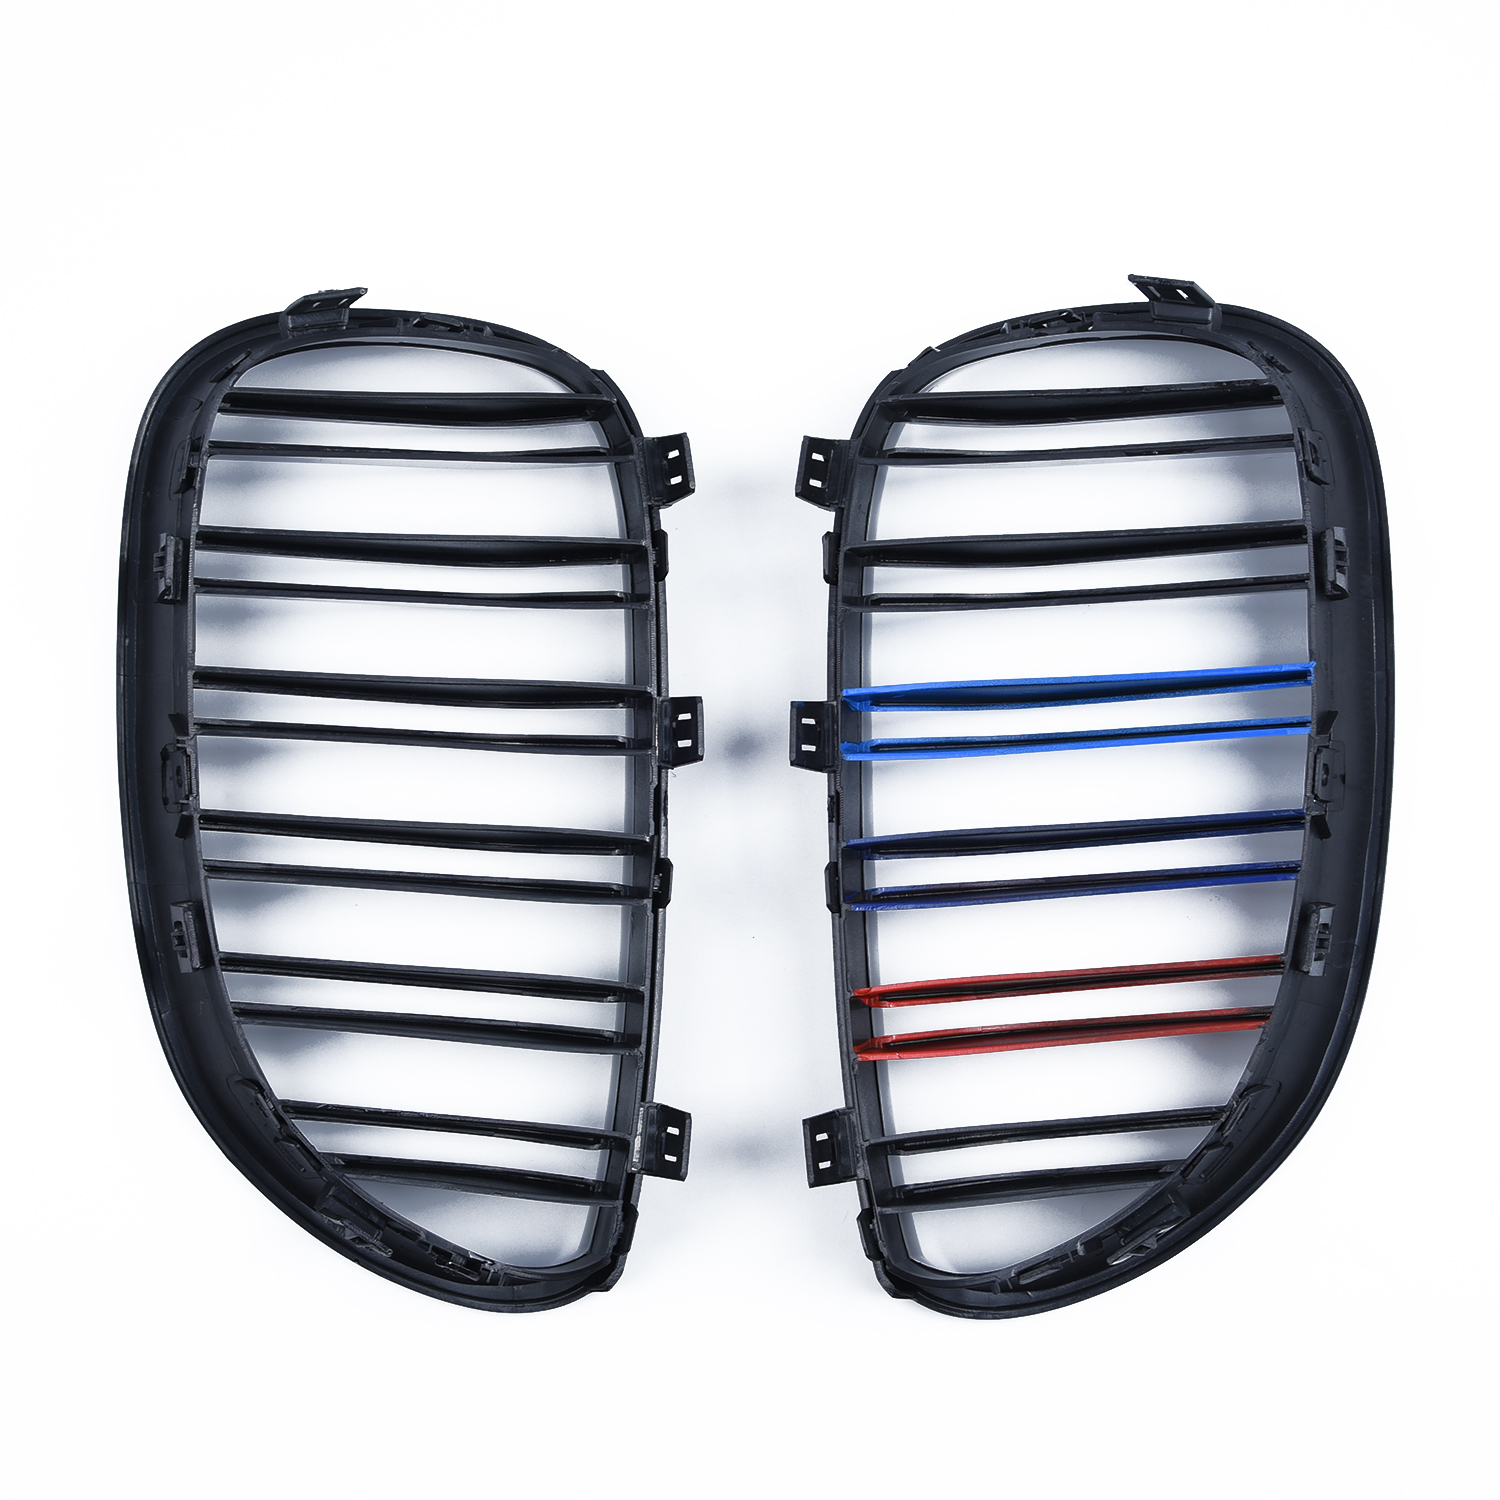 Left Grilles Front Kidney for <font><b>BMW</b></font> <font><b>E60</b></font> E61 2003-2010 <font><b>5</b></font> <font><b>Series</b></font> Replacement 33*18*<font><b>5</b></font>.9cm 1 Pair image